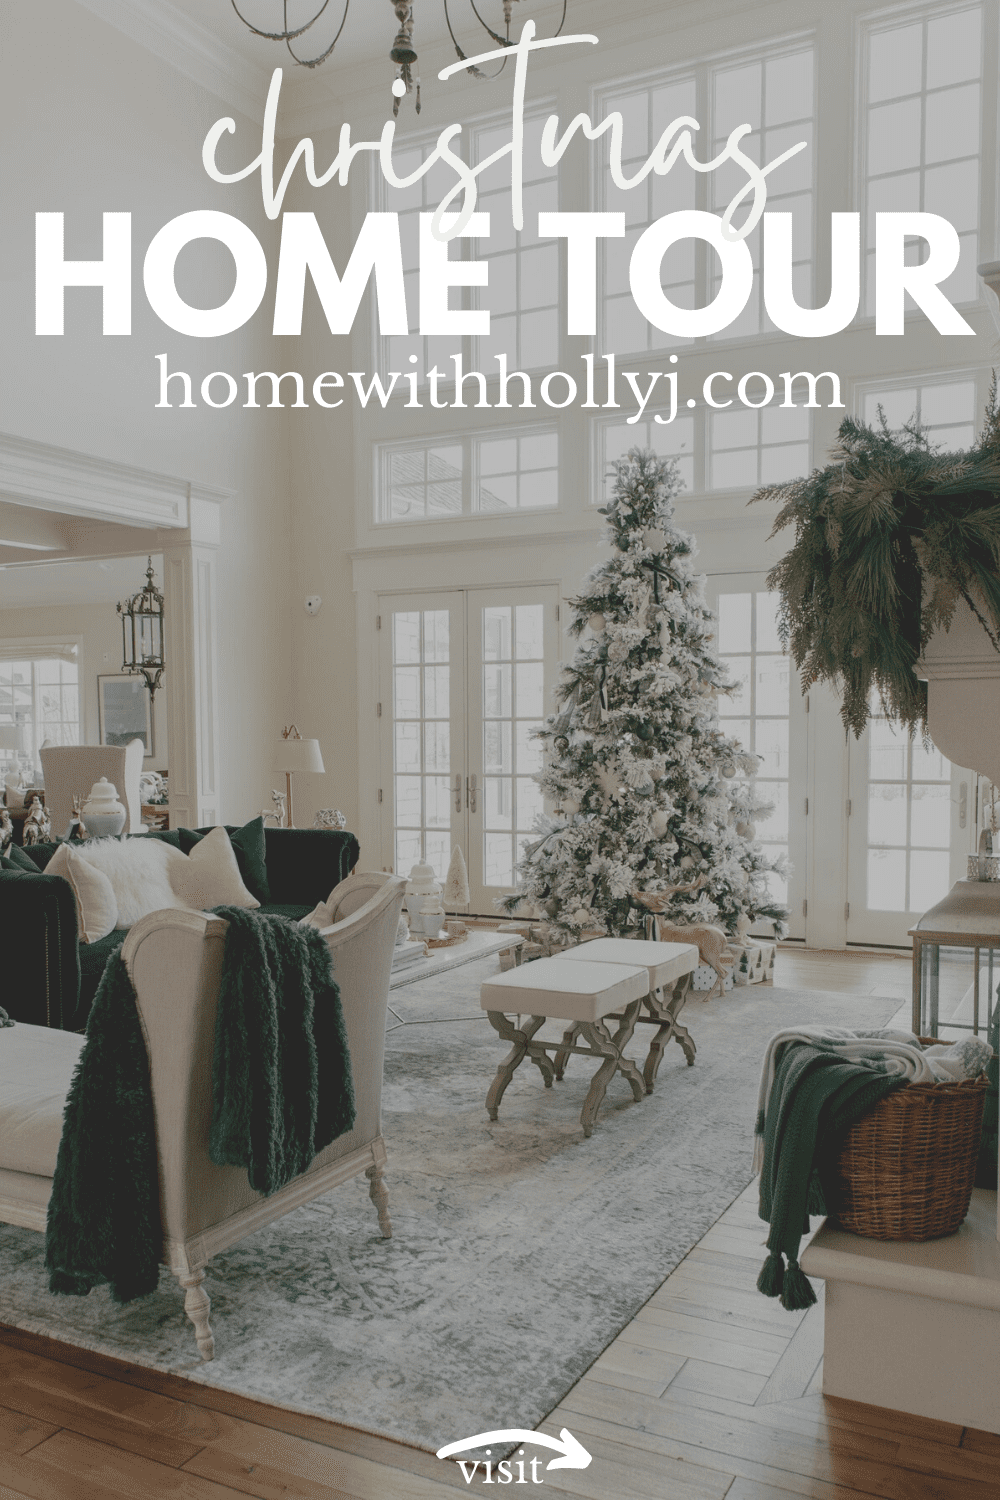 Click for a Christmas green & ivory home tour on Home with Holly J! Best Christmas decor ideas for the home diy vases. Style Christmas tablescapes table centerpieces. Simple Christmas living room decorations & Christmas mantel ideas. Learn how to style Christmas decor. Cute Christmas ideas decorating winter table. Awesome Christmas decorating ideas for the table. Christmas farmhouse decorations & Christmas home decor elegant is the best. Cute ivory christmas decorations. #home #Christmas